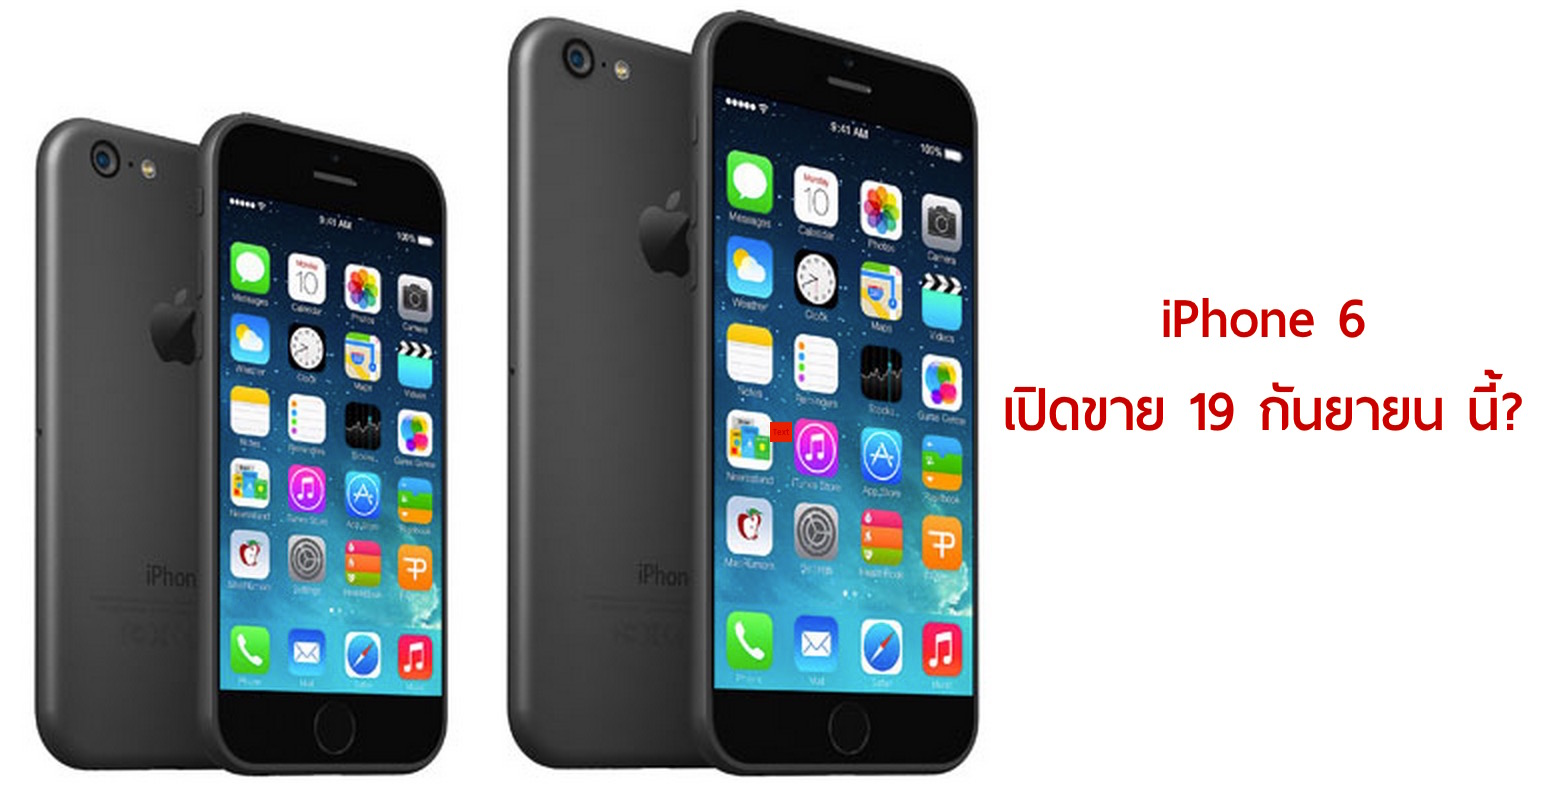 iphone 6 will available on 19 sep